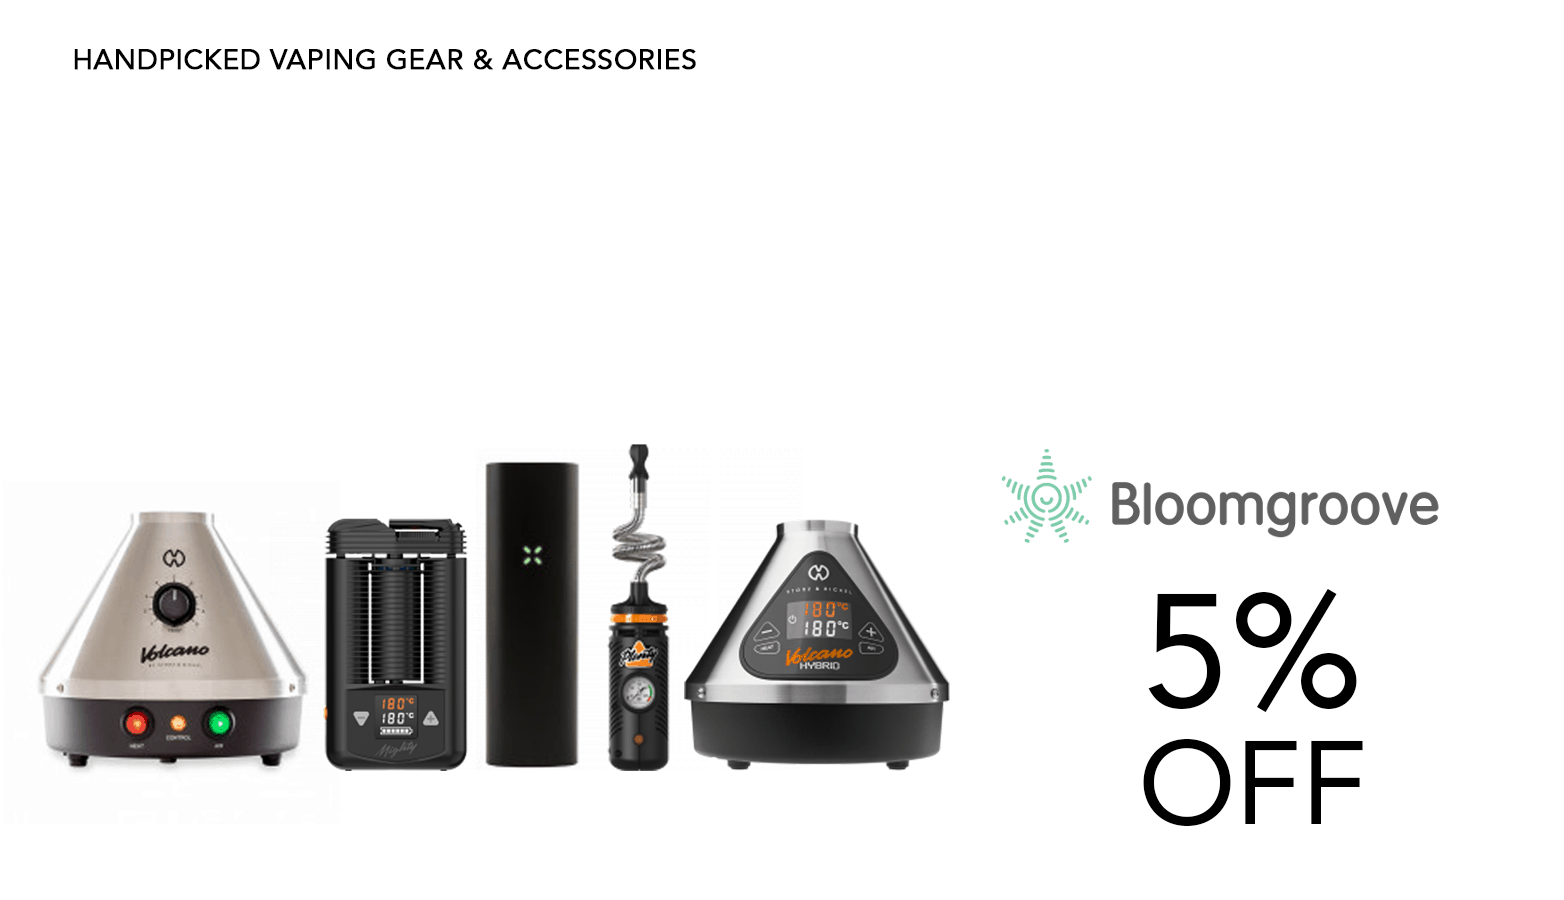 Bloom Groove Bongs Smoking Accessories Coupon Code Discount Promo